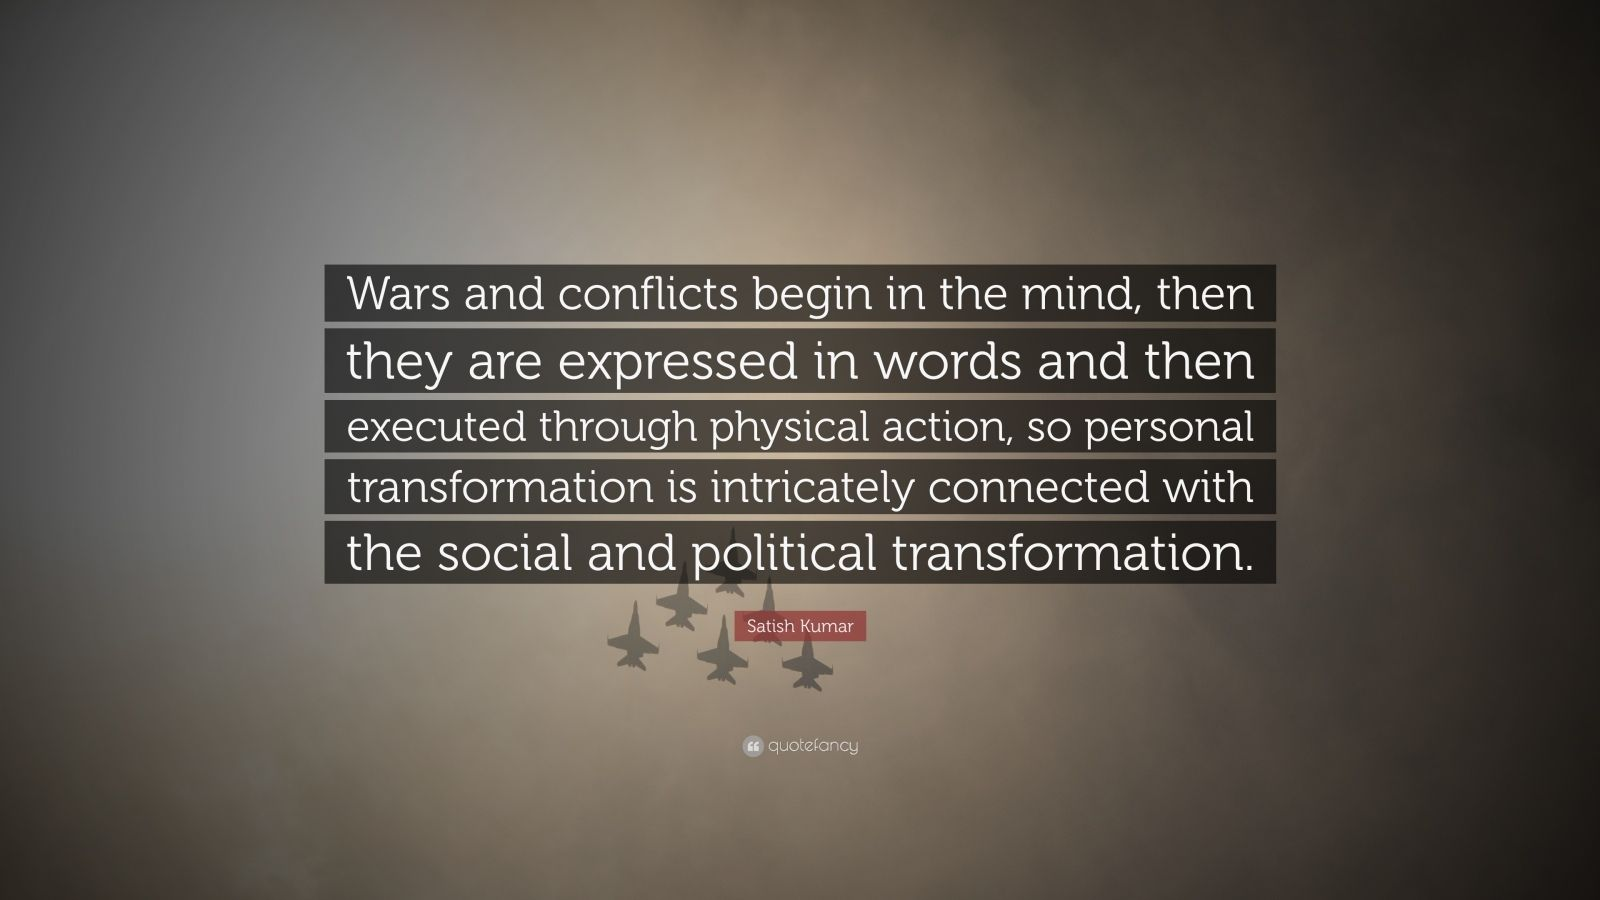 """Satish Kumar Quote: """"Wars and conflicts begin in the mind, then they are expressed in words and then executed through physical action, so personal transformation is intricately connected with the social and political transformation."""""""